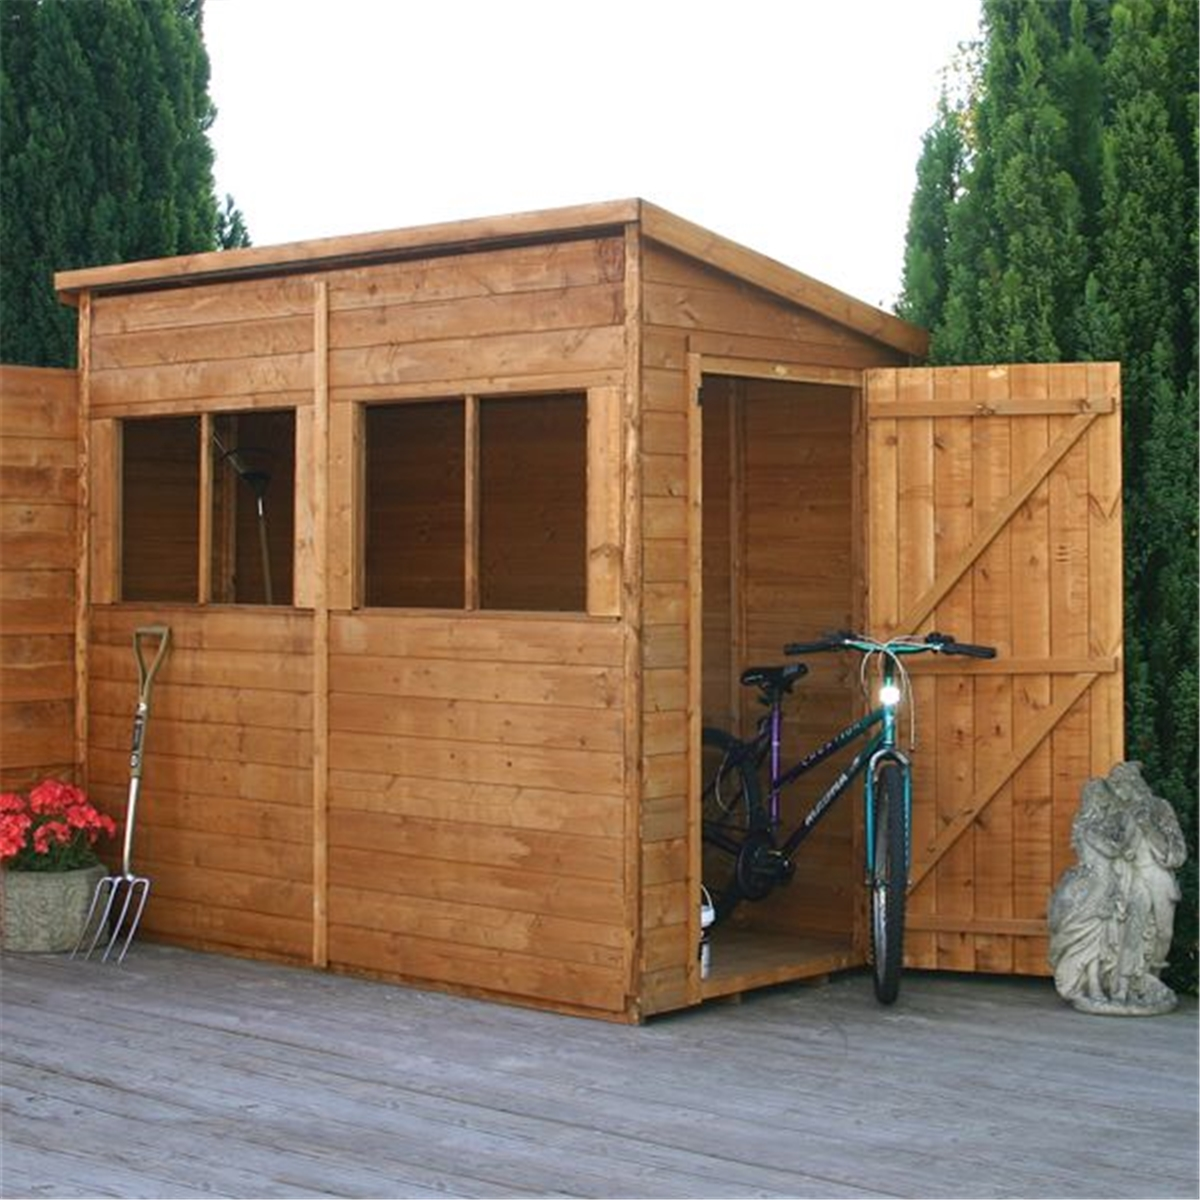 8 X 4 Premier Tongue And Groove Pent Shed With 4 Windows